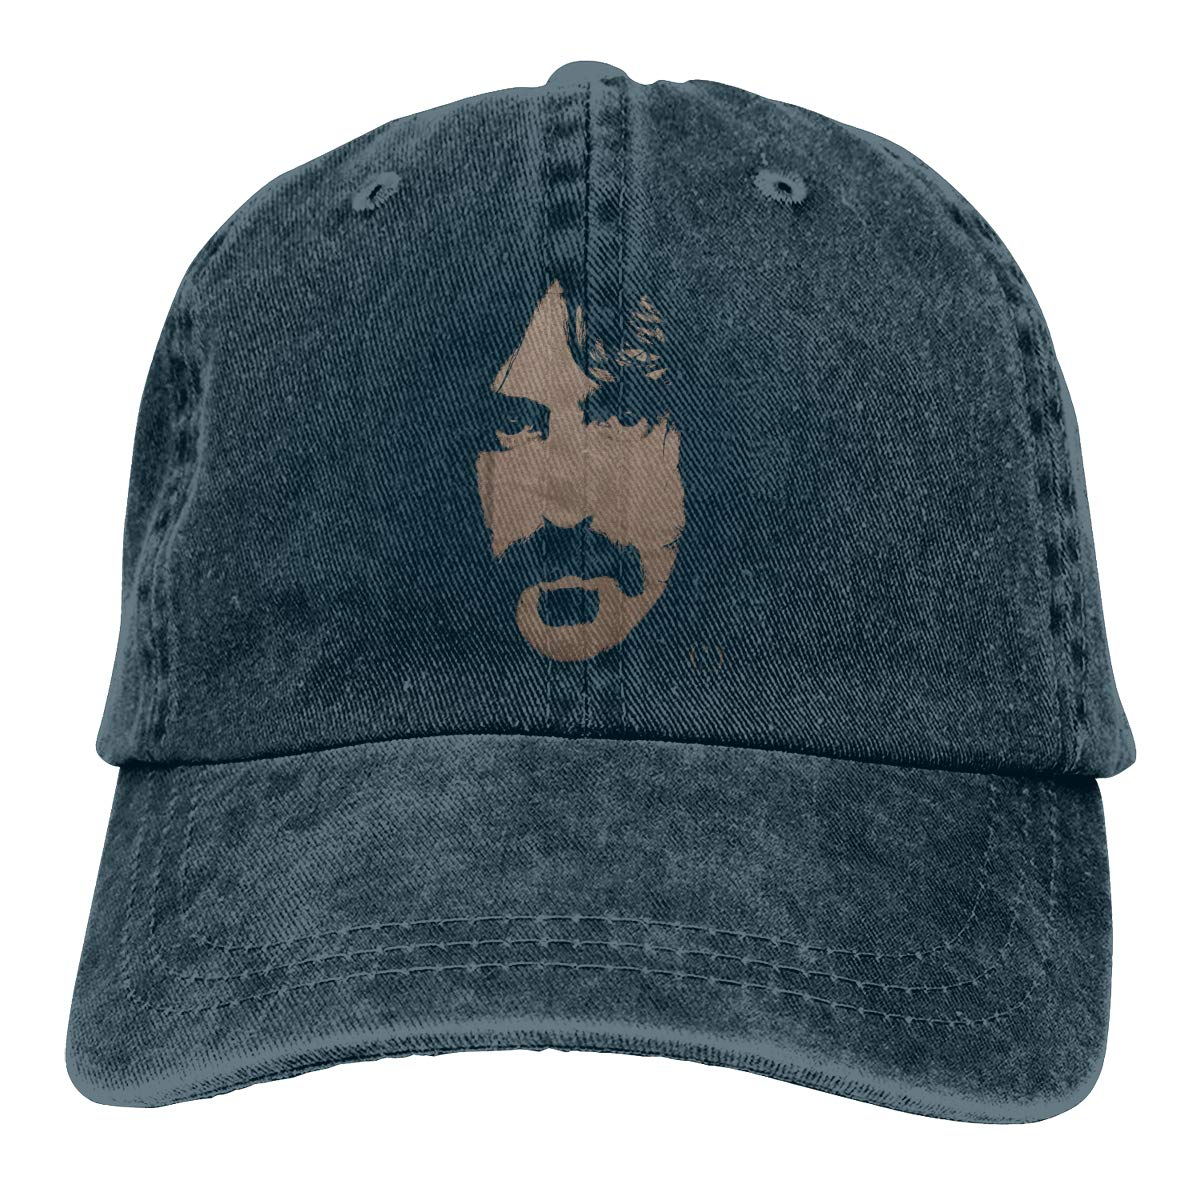 Zlizhi Frank Zappa Men Women Plain Cotton Adjustable Washed Twill Low Profile Baseball Cap Hat